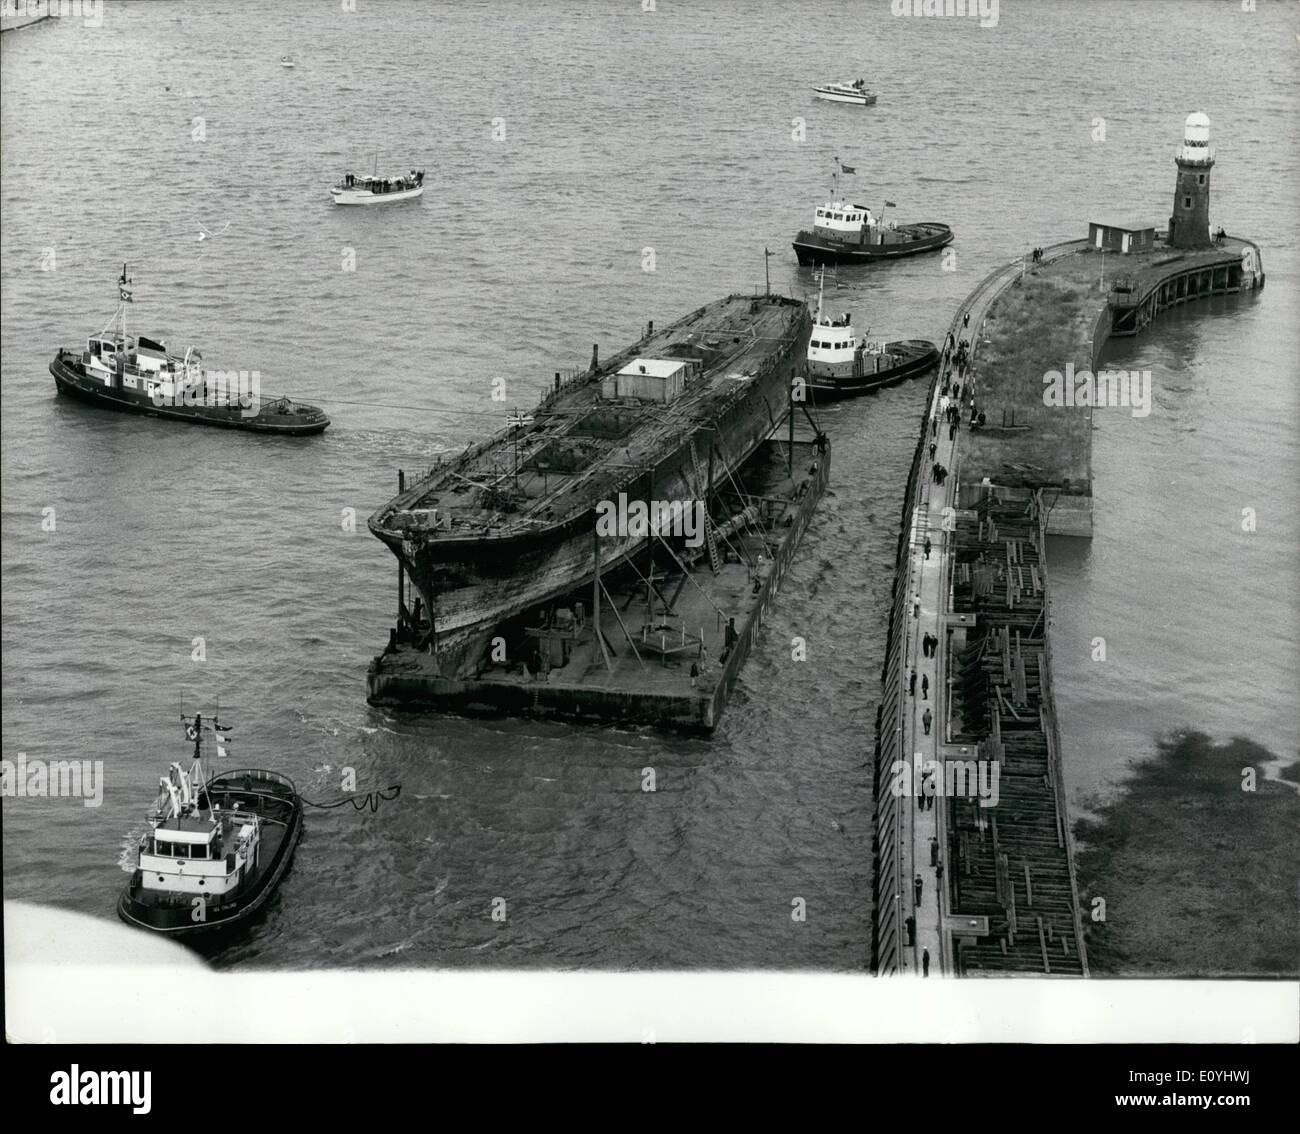 Jun. 06, 1970 - ''Great Britain'' Arrives Home After 8,000 Mile Sea Tow from the Falkland Islands. - Stock Image